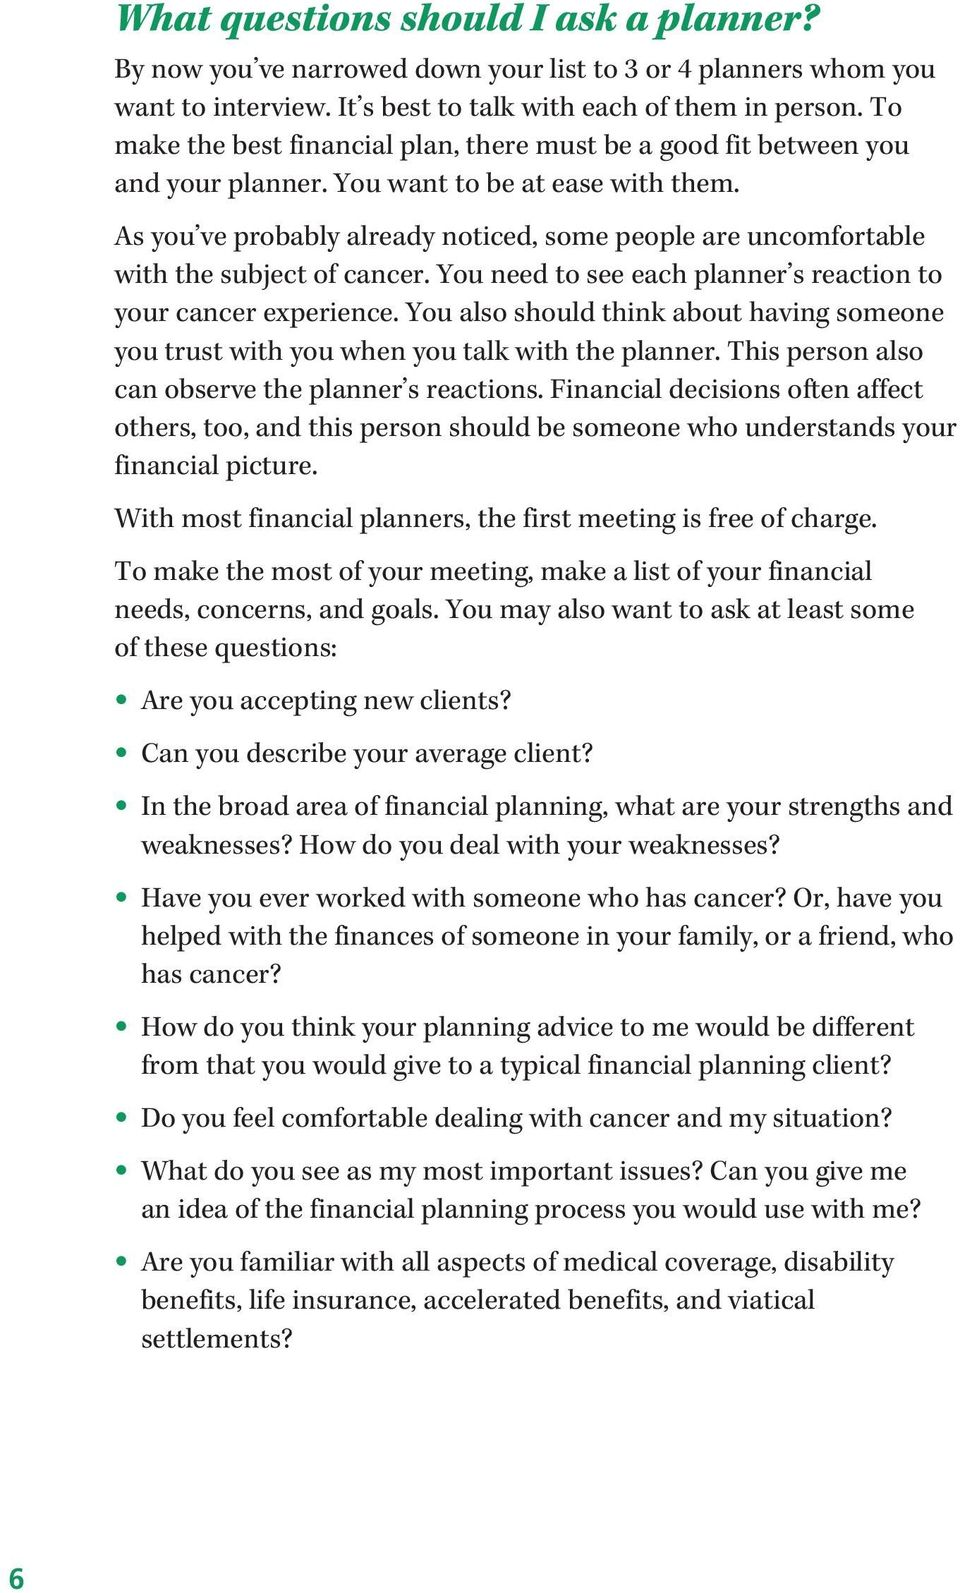 As you ve probably already noticed, some people are uncomfortable with the subject of cancer. You need to see each planner s reaction to your cancer experience.